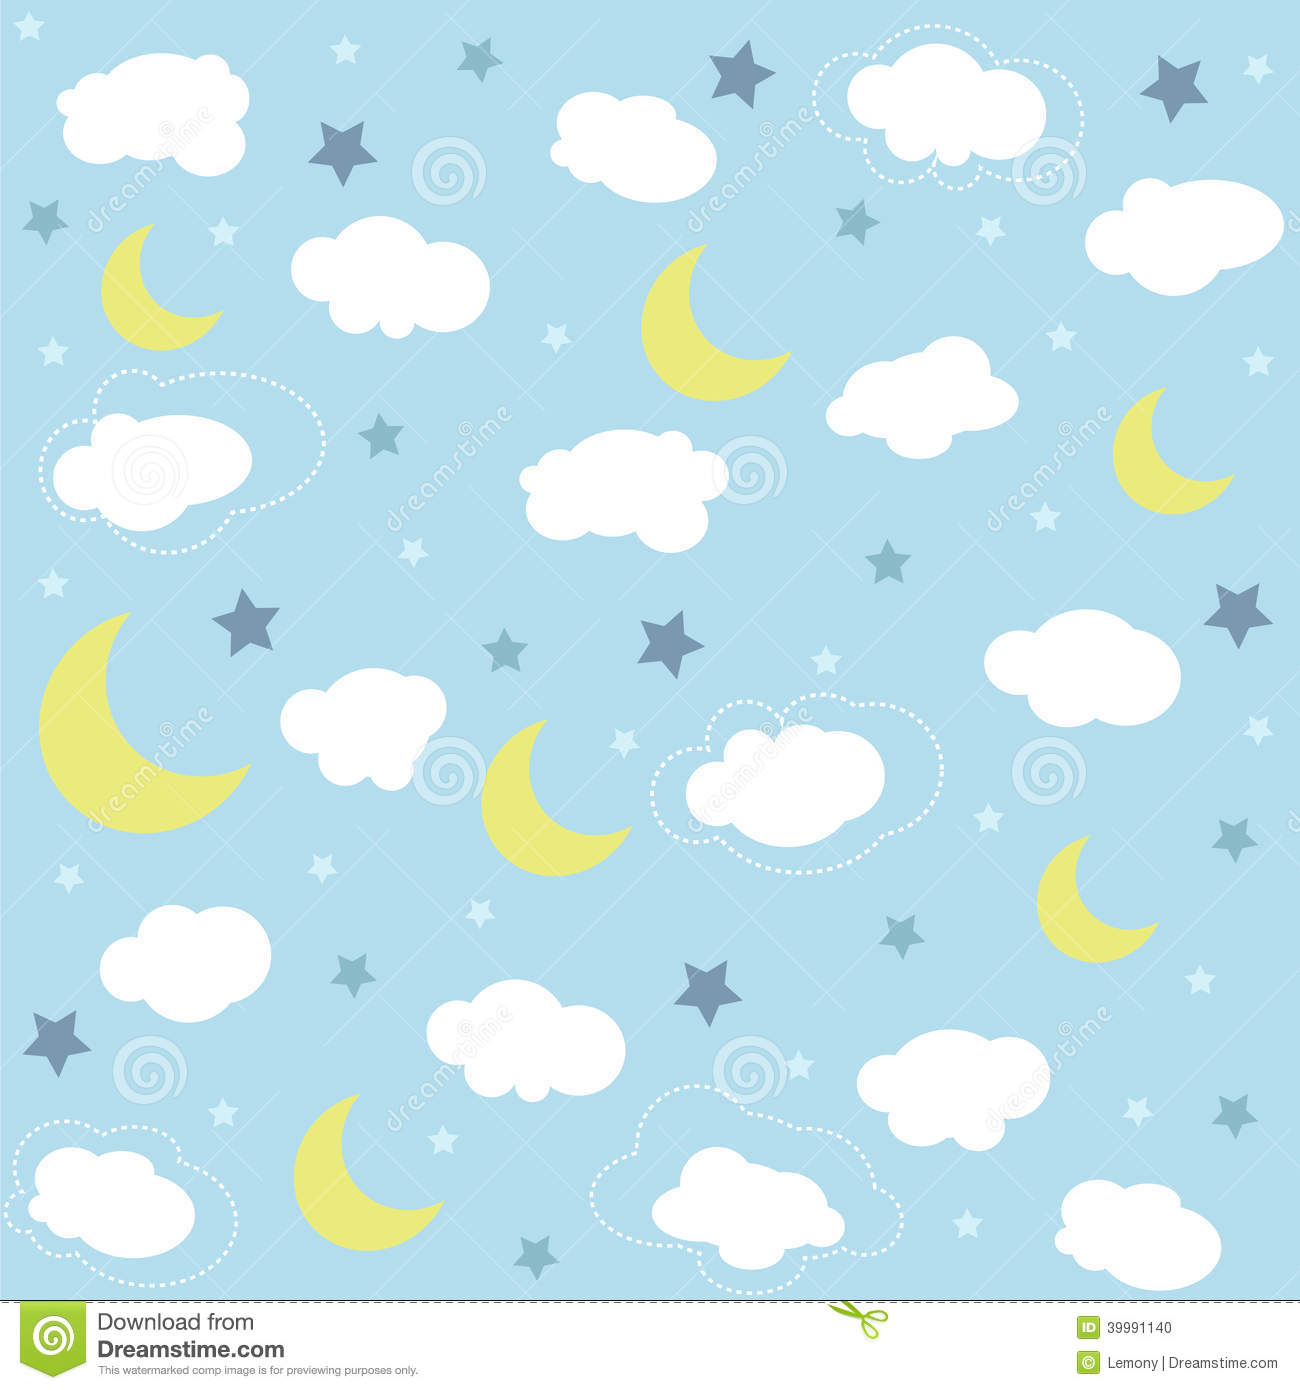 Cute Elephant Cartoon Wallpapers Seamless Baby Pattern Wallpaper Stock Photo Image Of